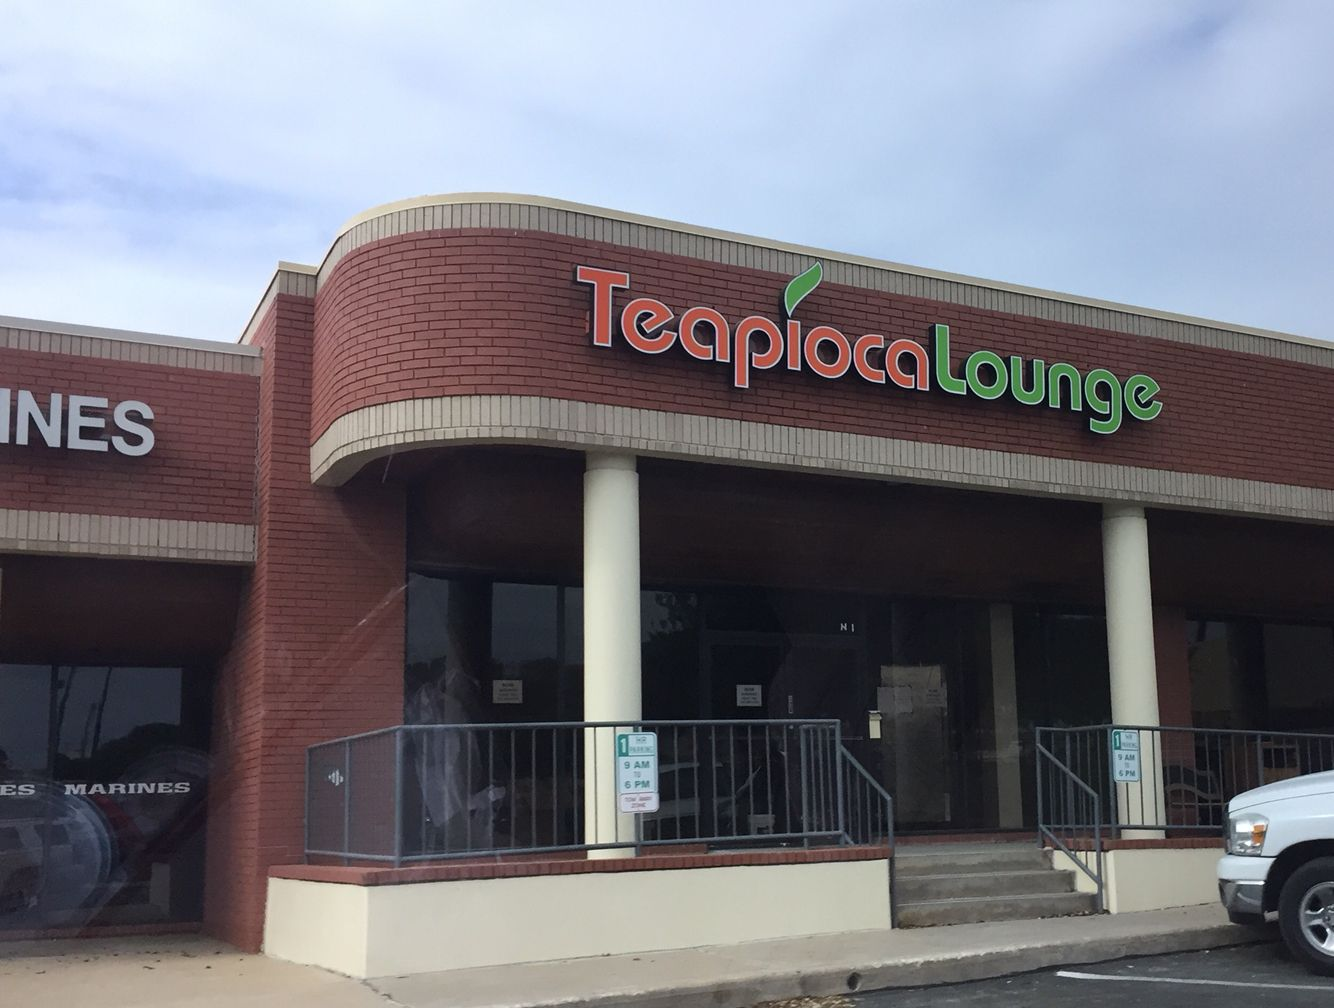 Come by for a refreshing boba tea at the new teapioca